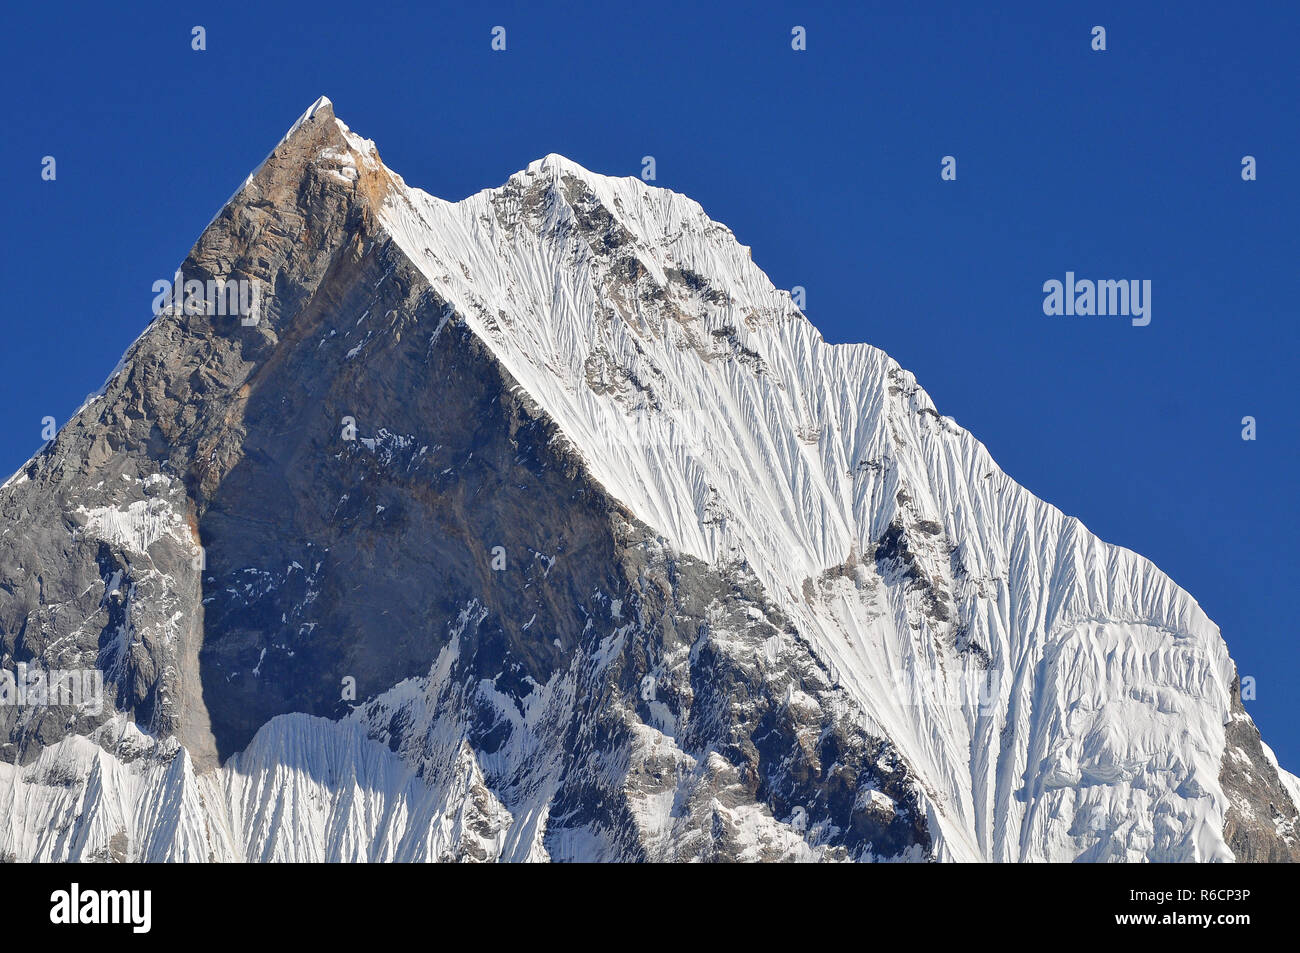 Nepal, Annapurna Conservation Area, Machapuchare Or Machhapuchhre Fish Tail, Mountain In The Annapurna Himal Of North Central Nepal, View From Annapur Stock Photo